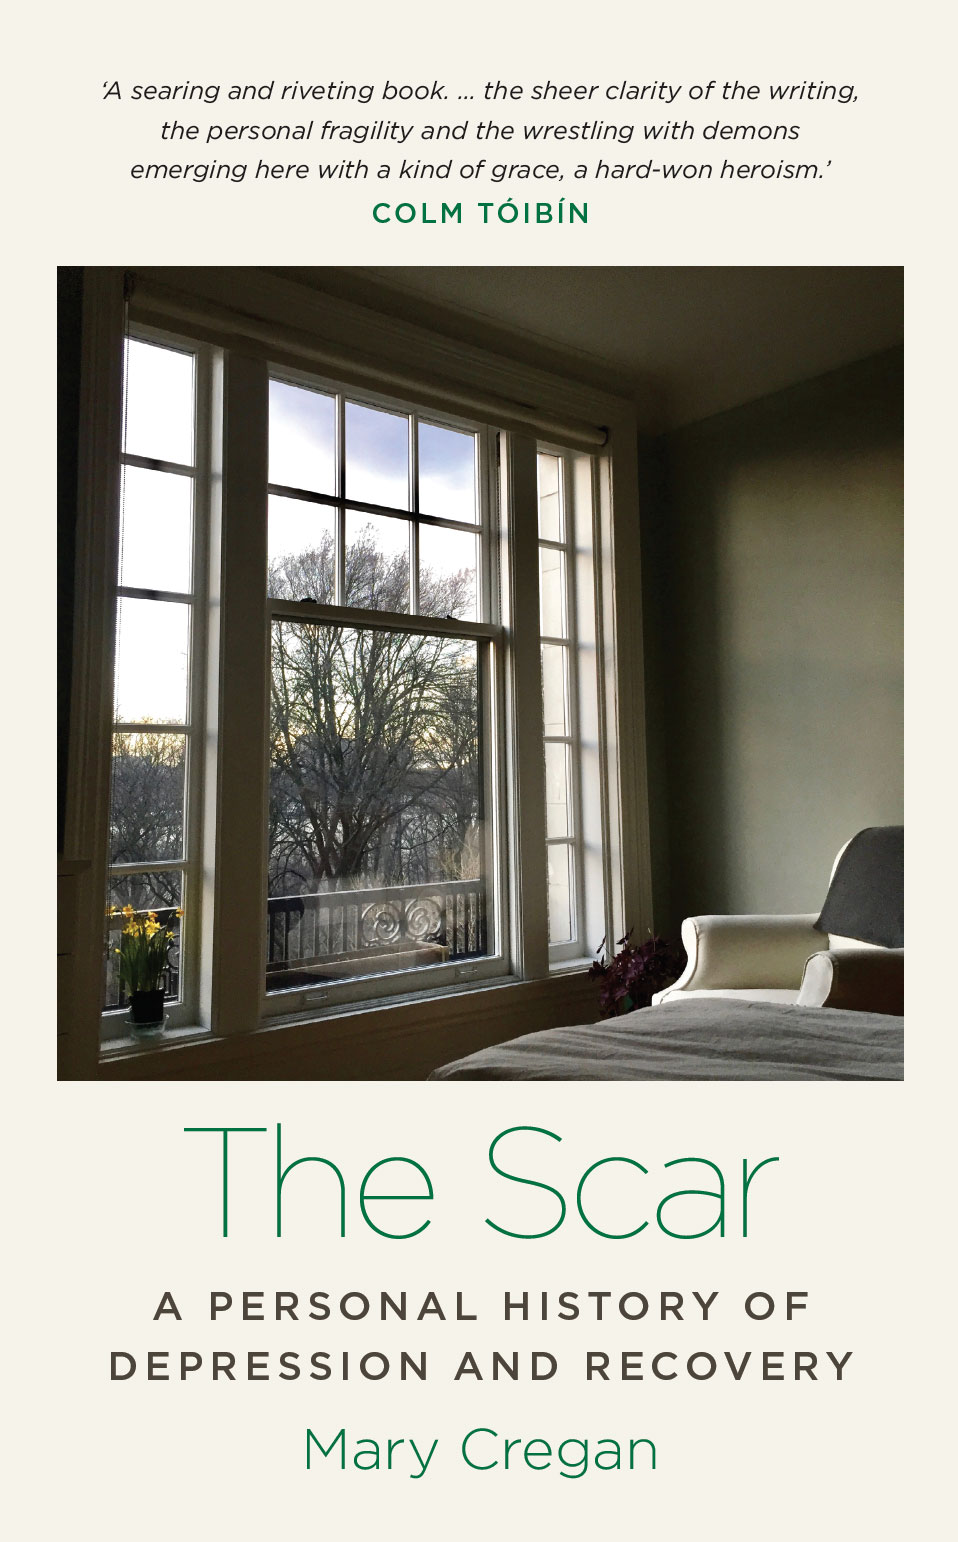 Beautifully designed book cover for The Scar by Mary Cregan